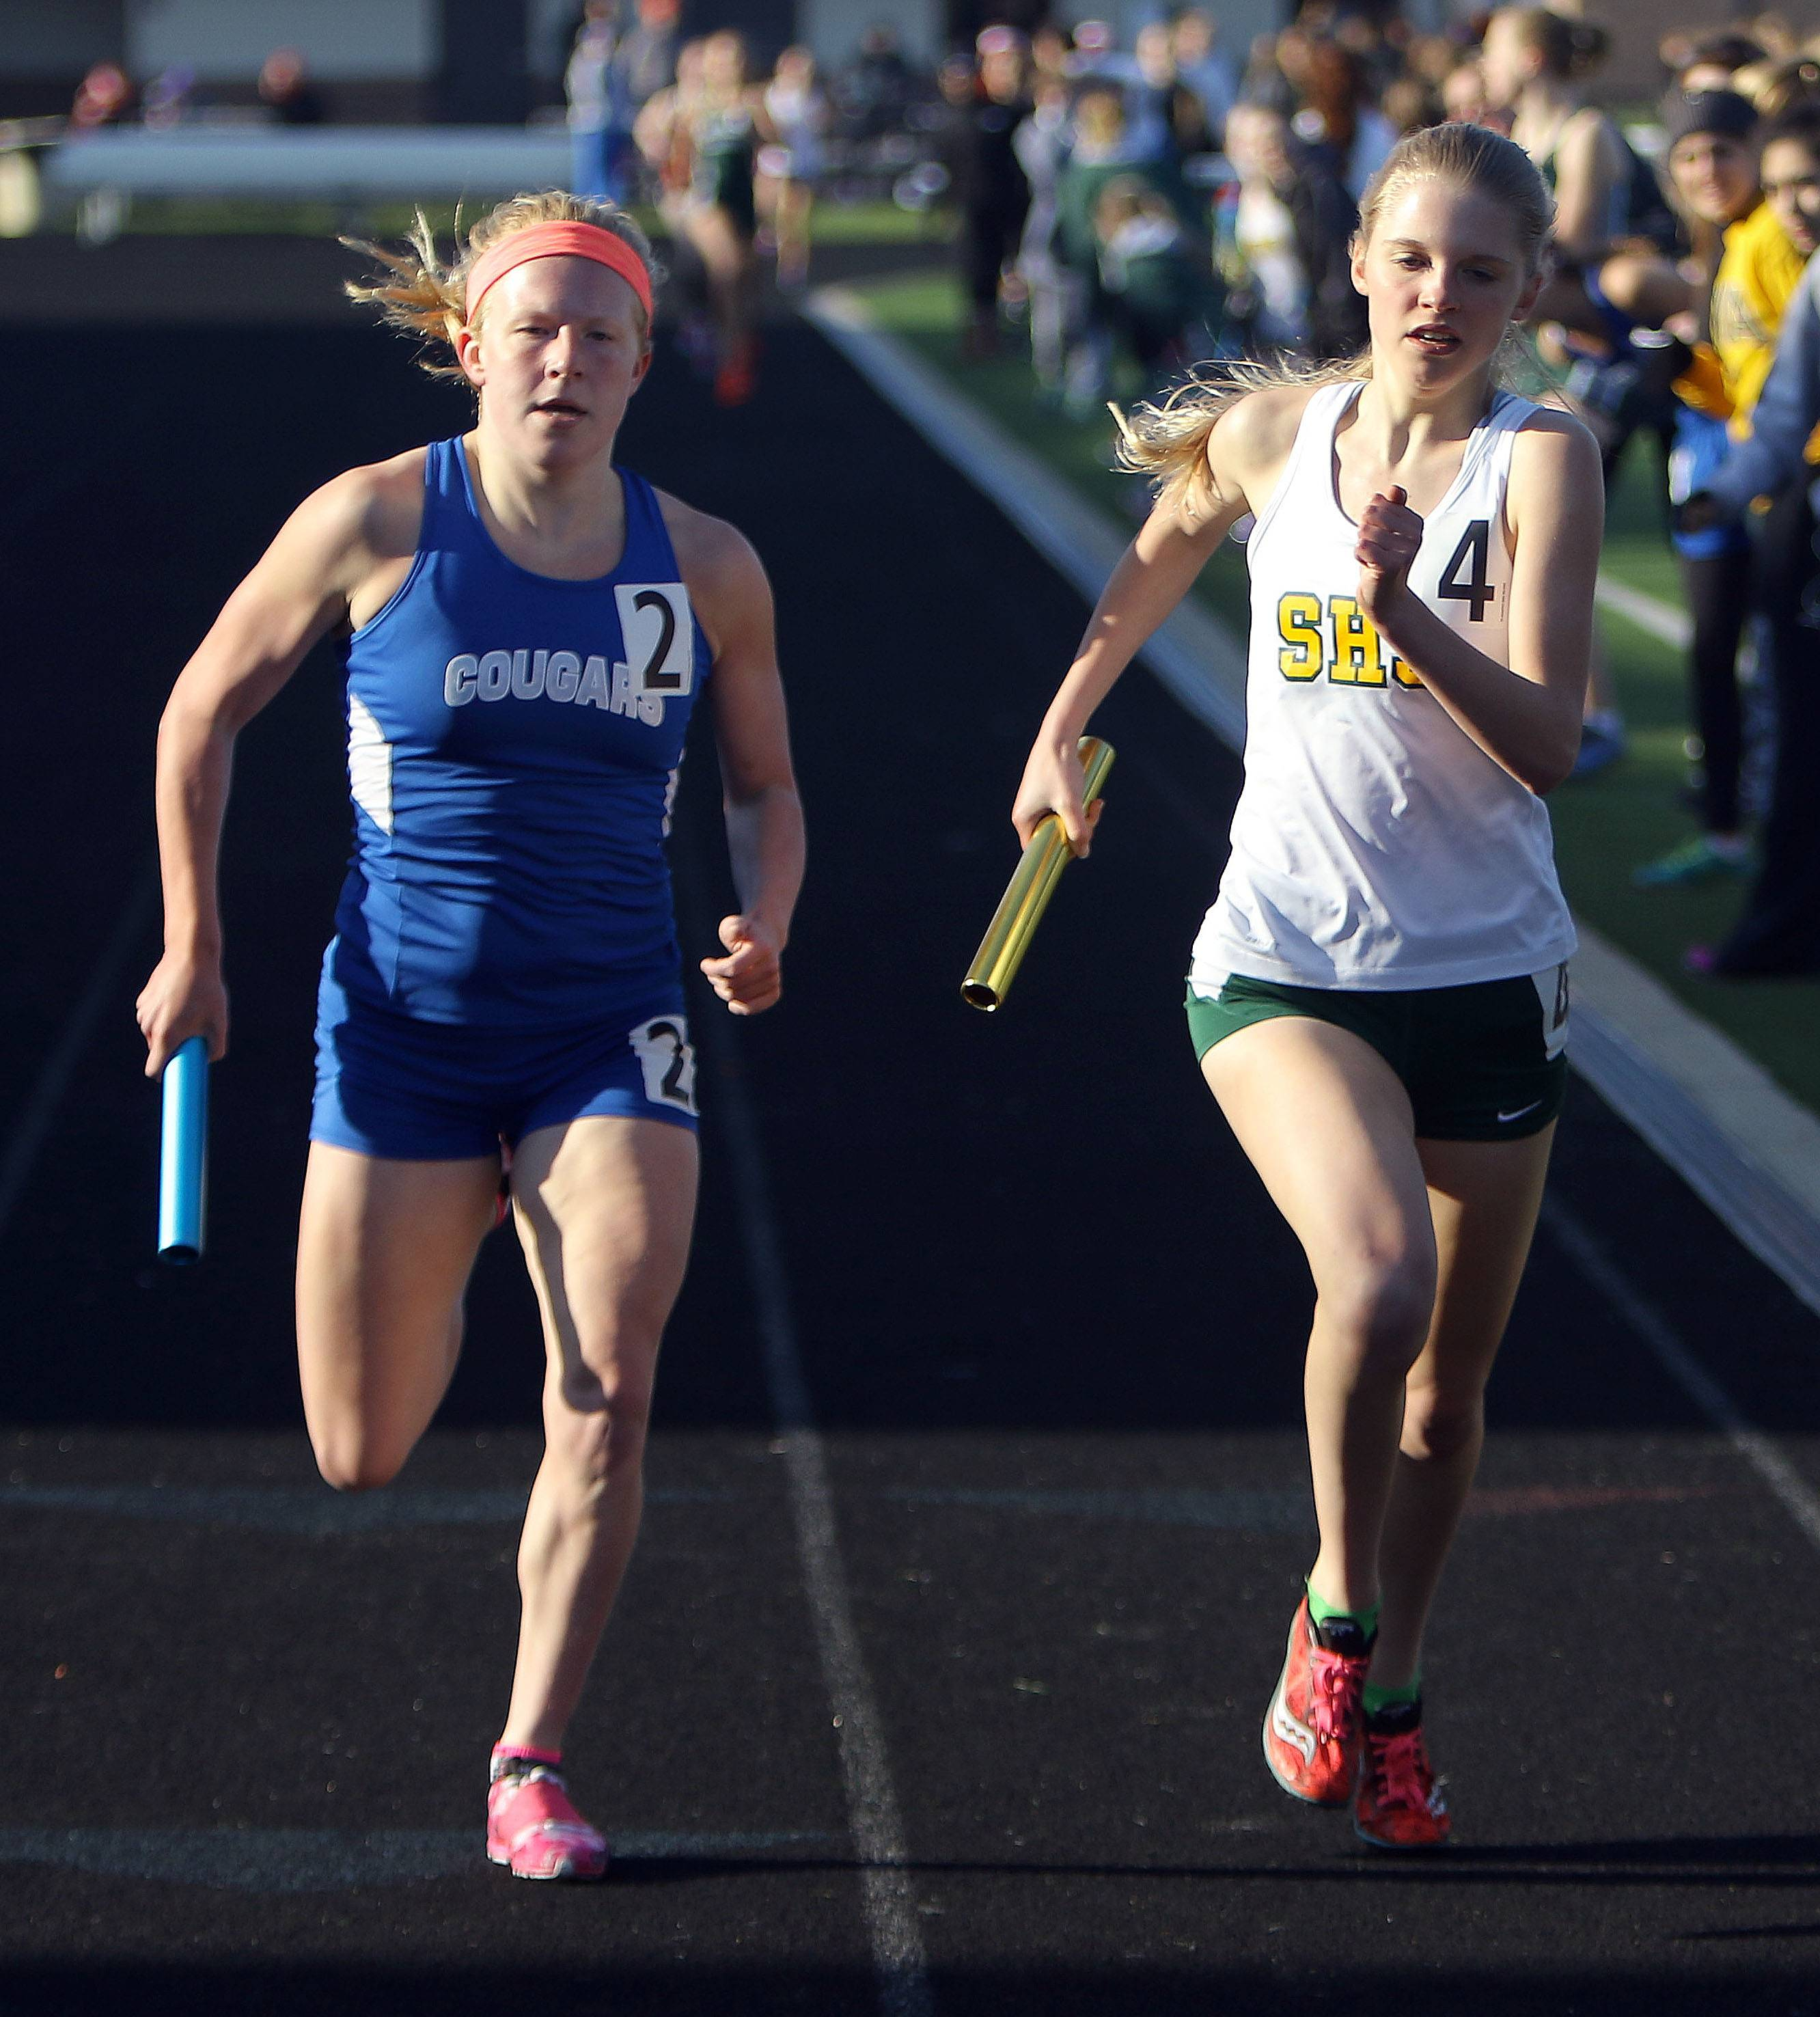 Vernon Hills' Nicole Pinter, left, and Stevenson's Isabelle Sparreo sprint to the finish in the 4x800 relay during the Lake County meet Friday at Grayslake North High School.